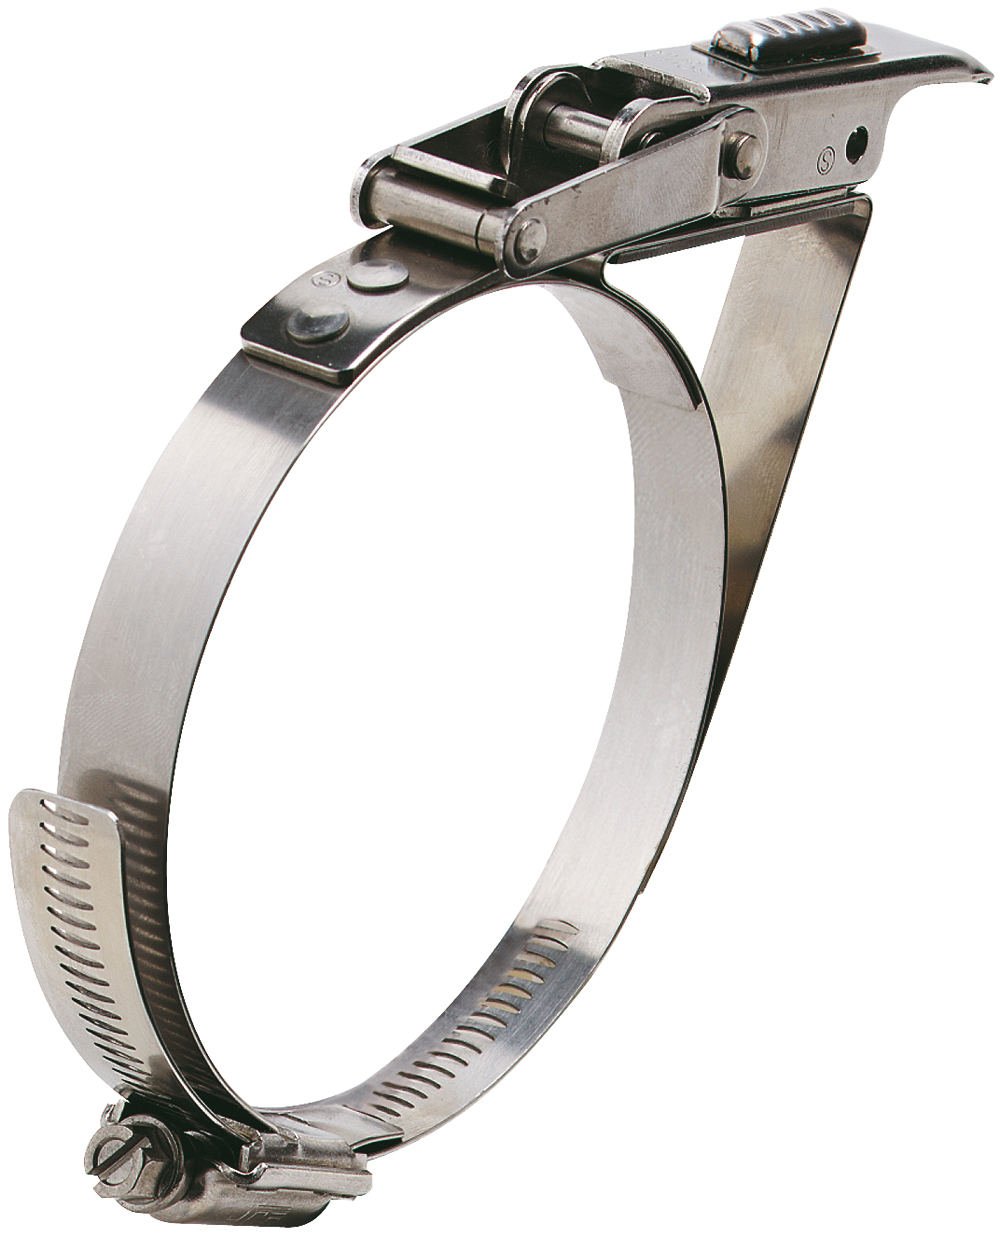 65-90mm Diameter Hi-Torque Heavy Duty Stainless Steel Quick Release Bandclamp with Safety Catch